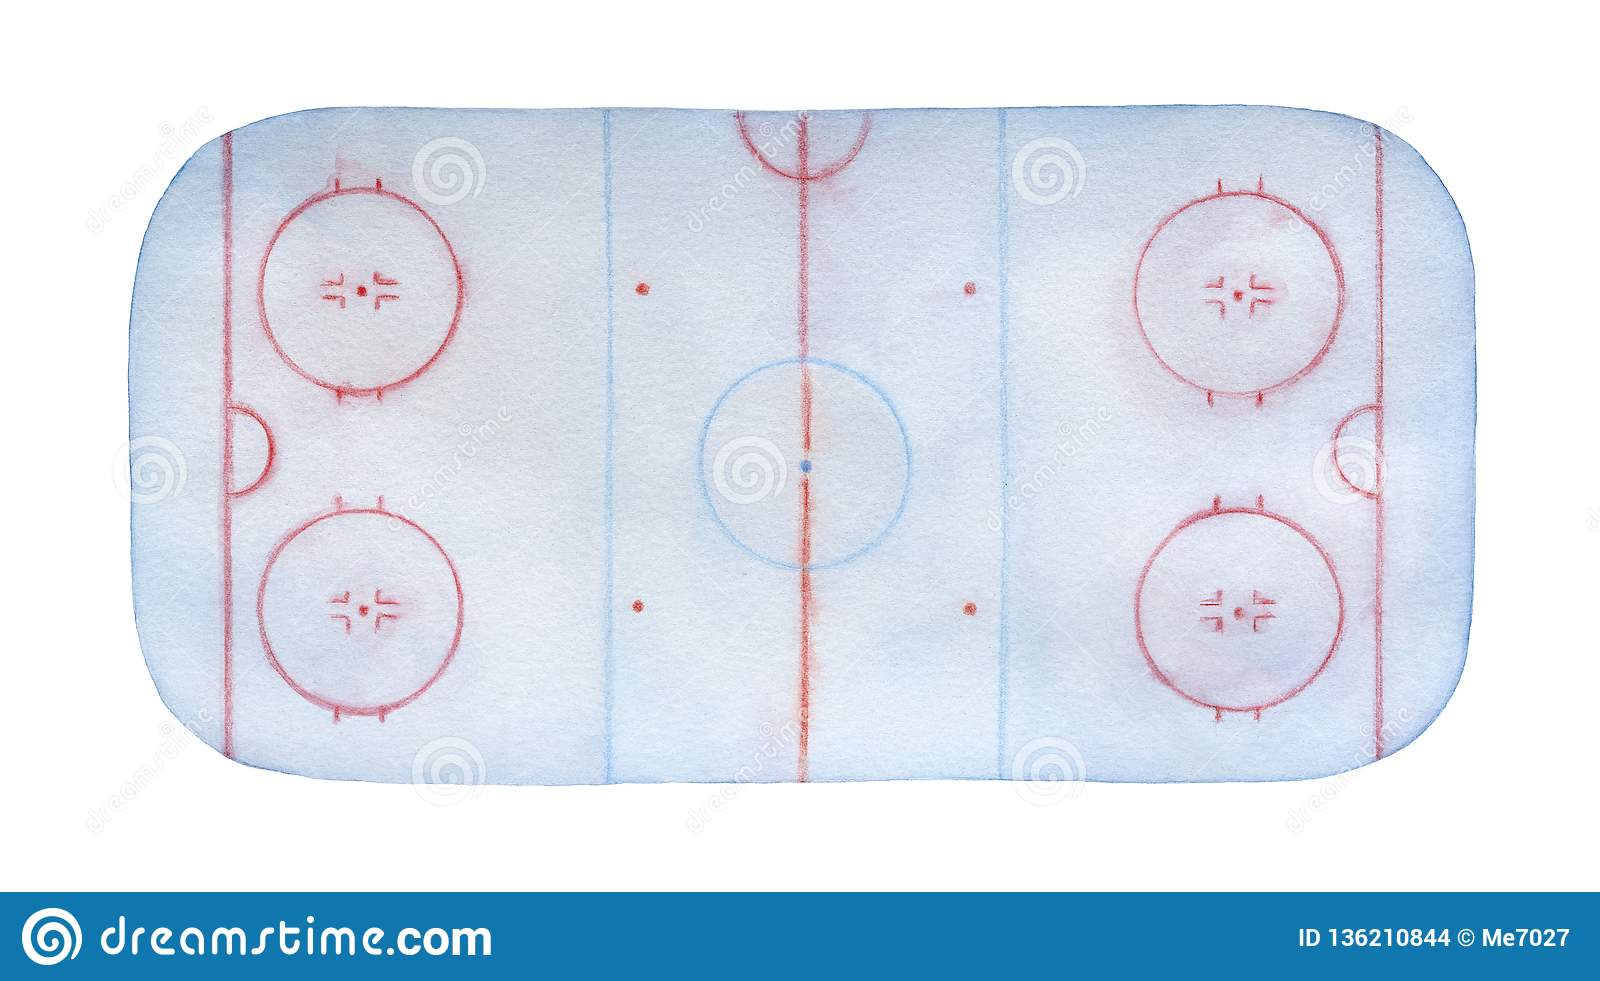 frosty ice hockey rink watercolour with lines, marks, circles, zones and  positions